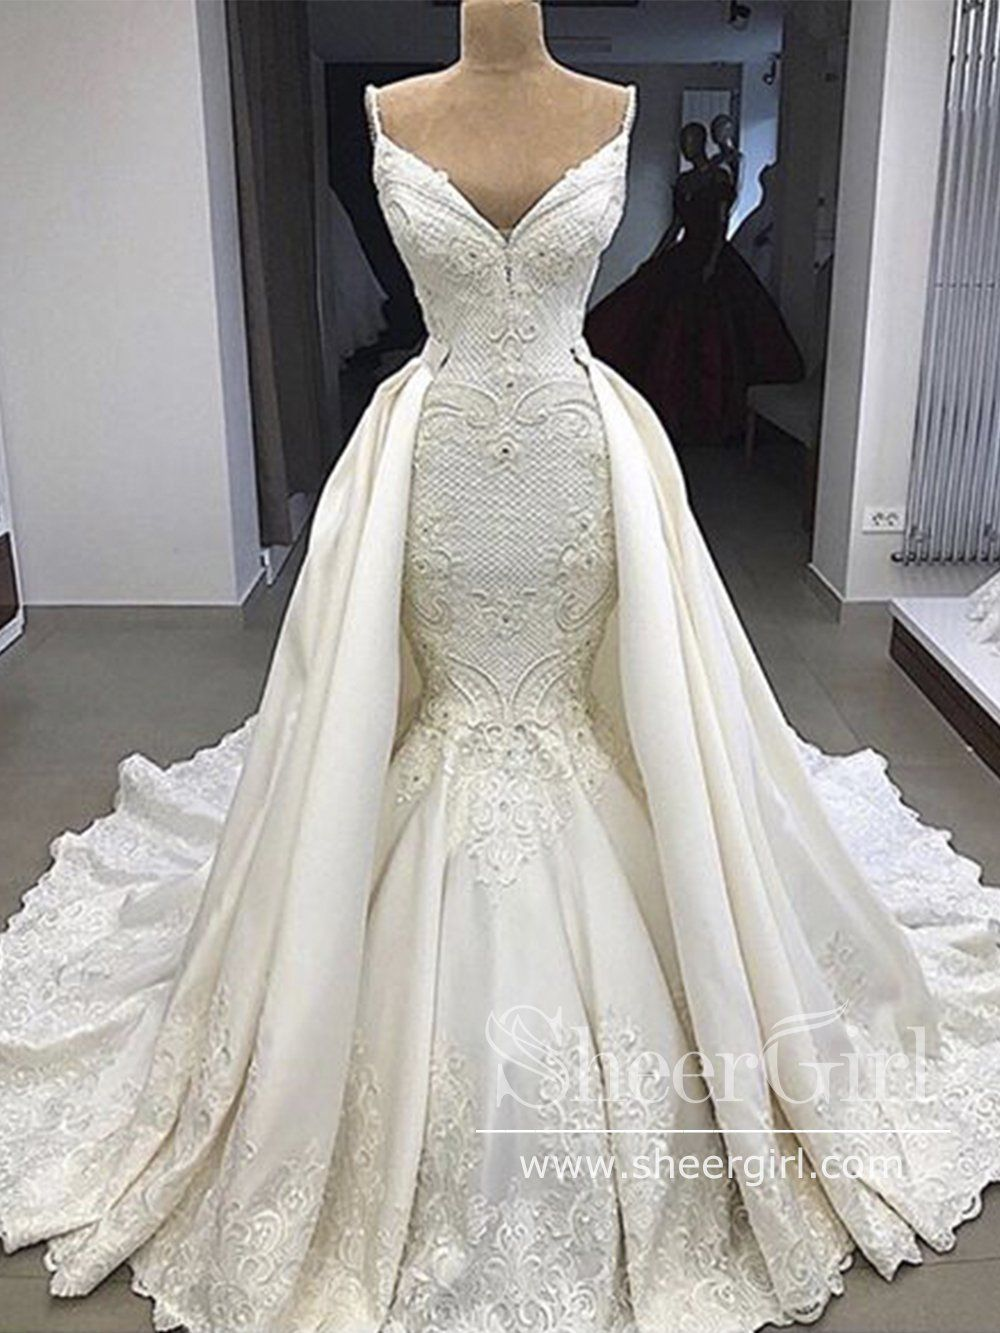 Luxurious Satin Embroideried Quinceanera Dress Beaded Ball Gown Wedding Dress With Detachable Train Awd1710 In 2021 Ball Gowns Wedding Cocktail Wedding Attire Wedding Dresses [ 1333 x 1000 Pixel ]